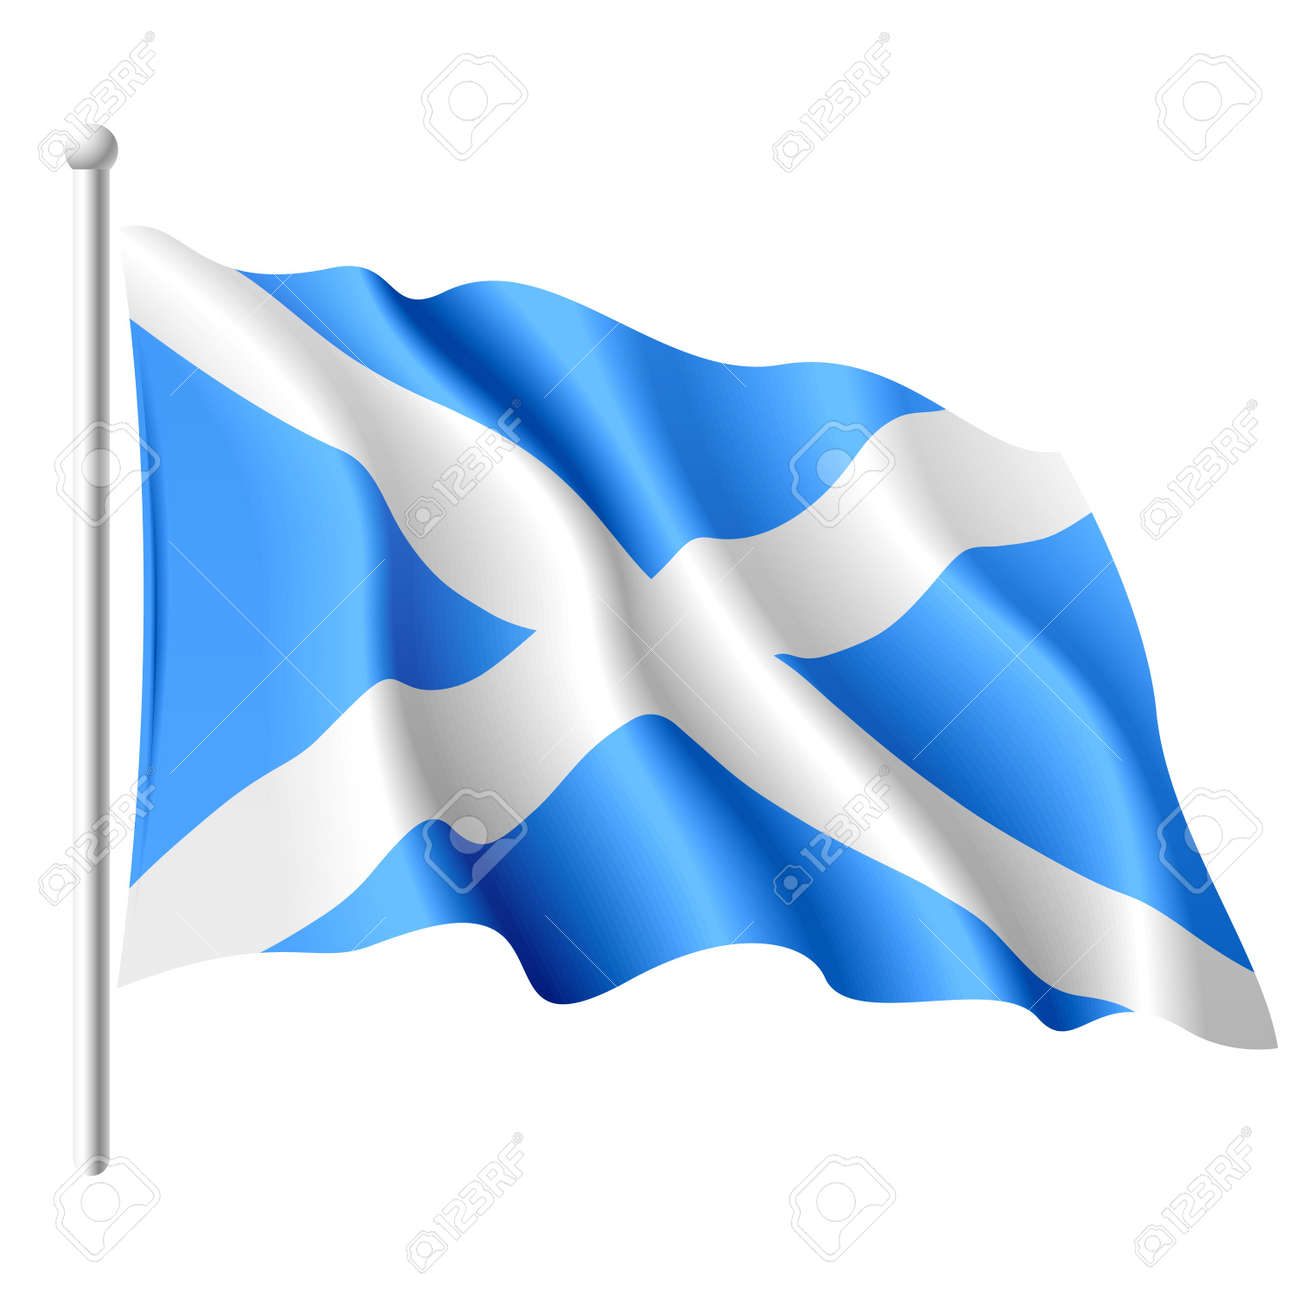 flag of scotland royalty free cliparts vectors and stock